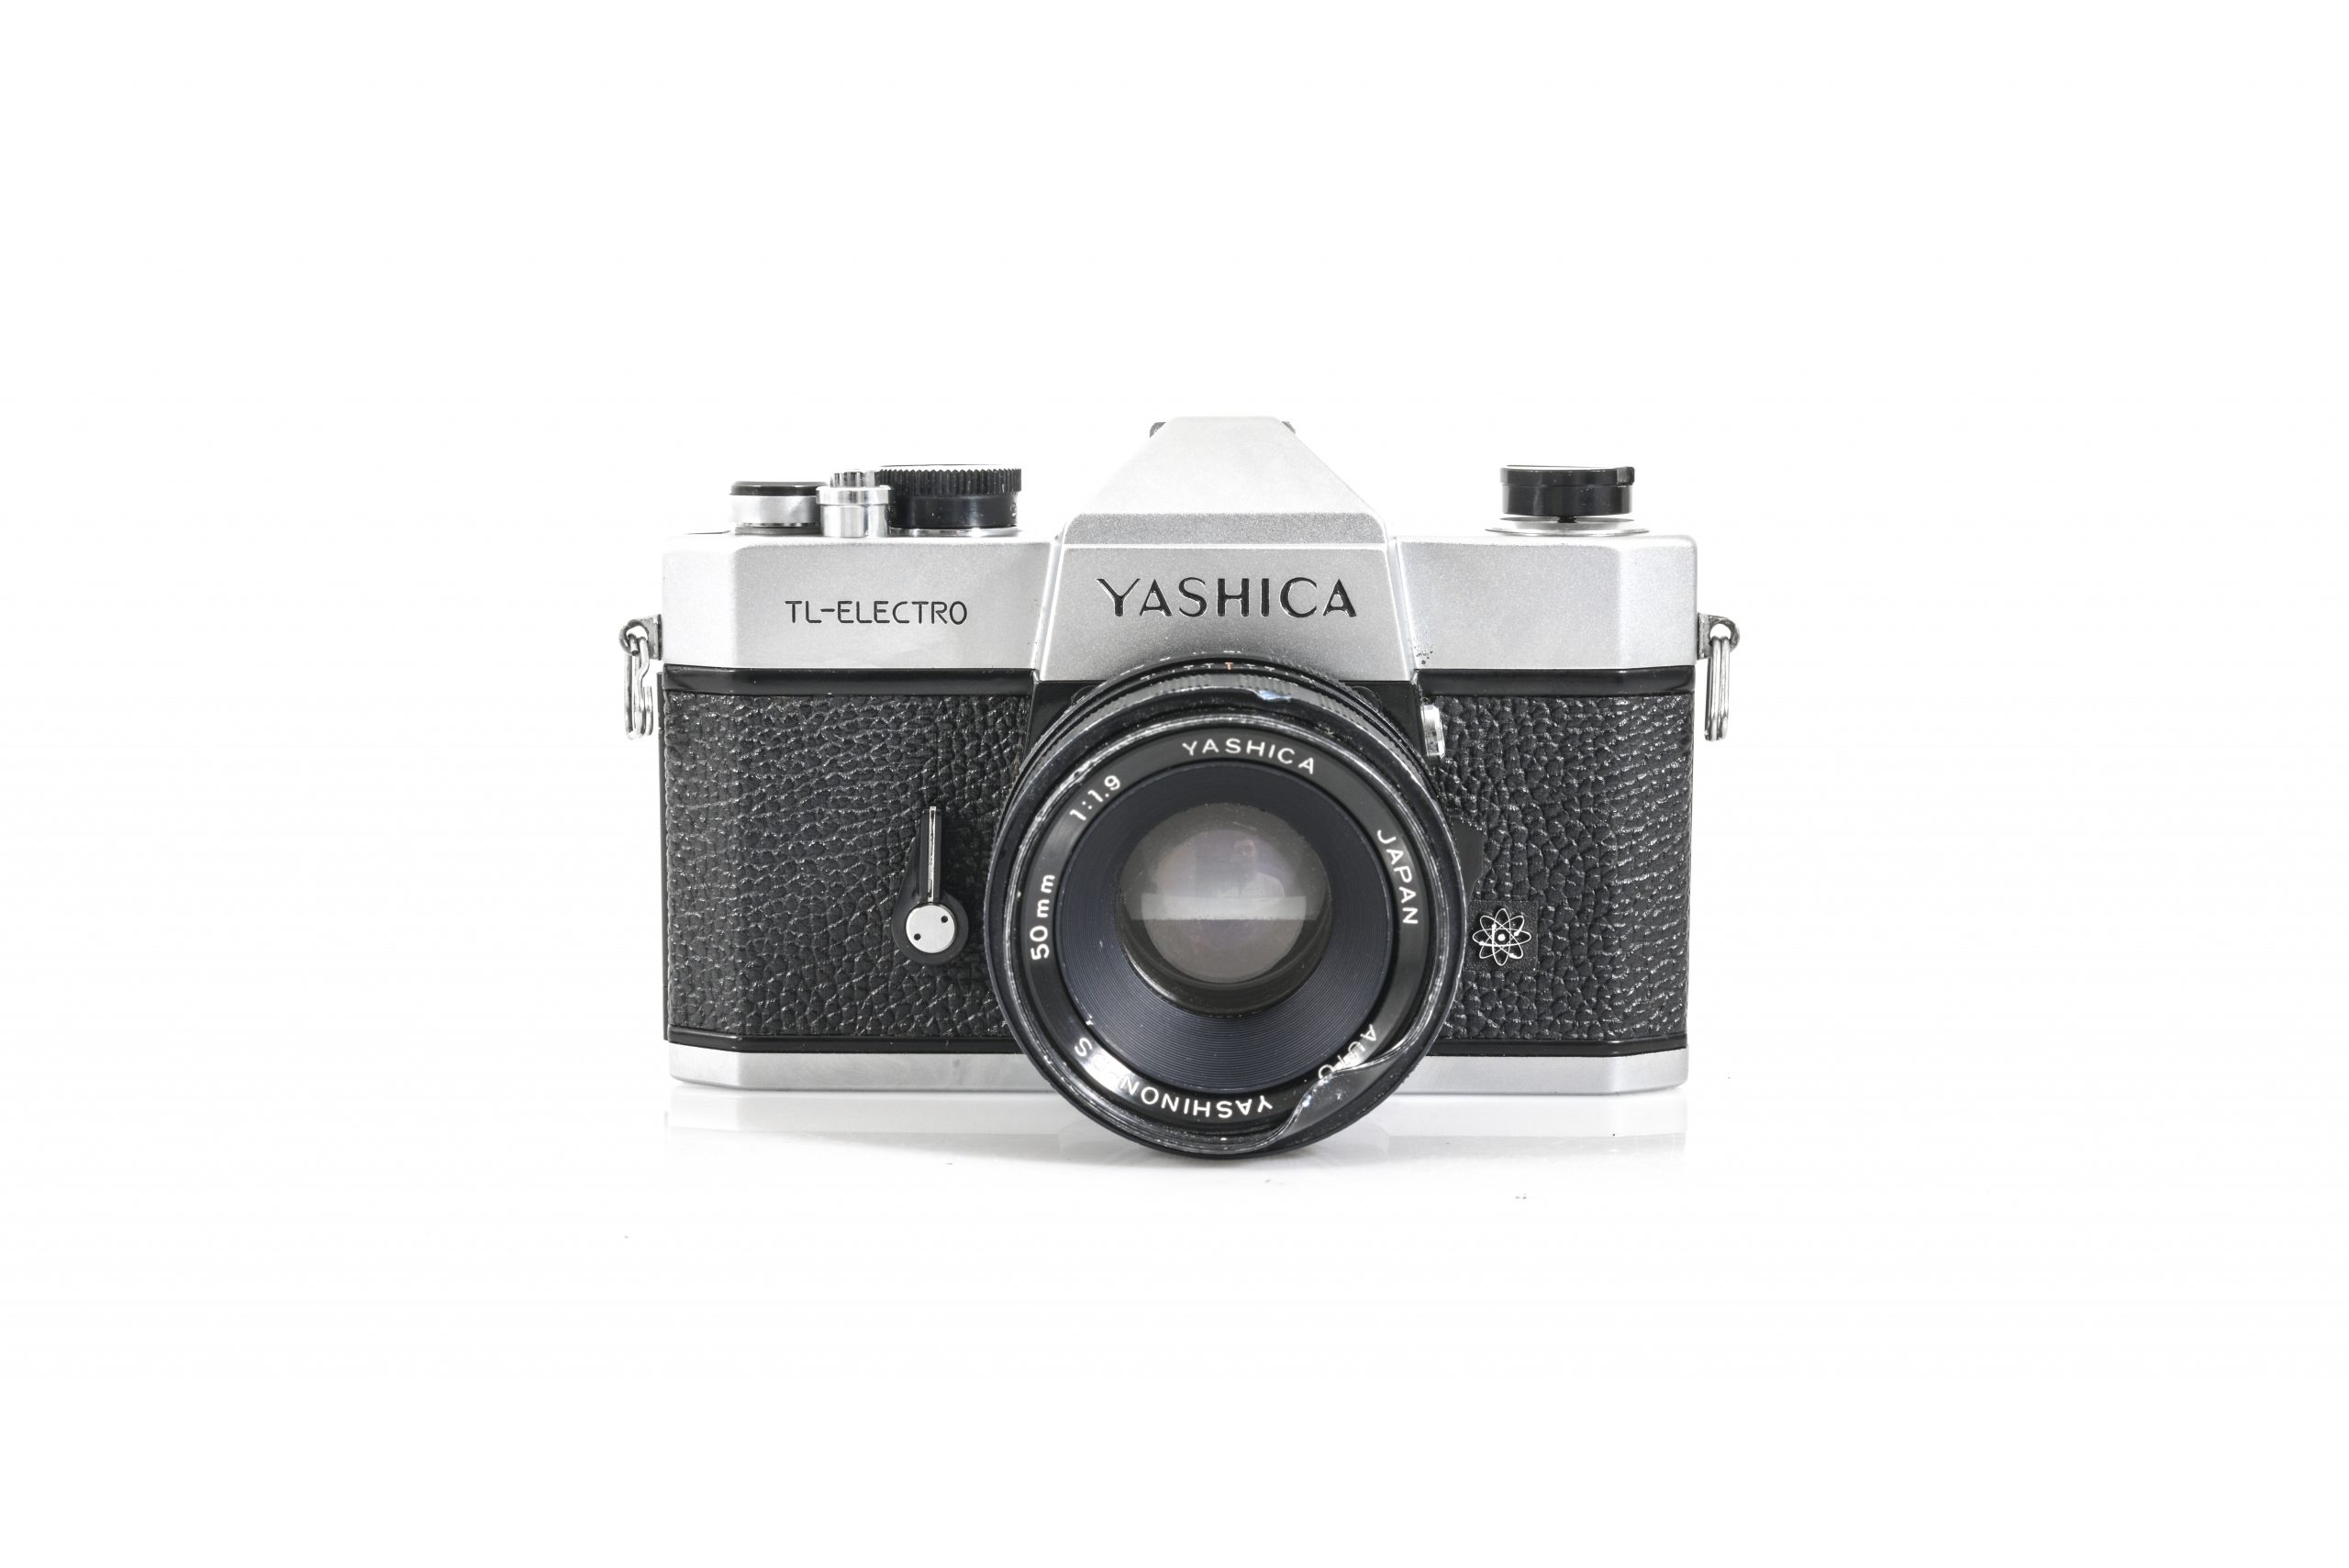 Yashica TL-ELECTRO 35mm SLR Film Camera + Yashinon-DS 50mm F1.9 Lens Lomo